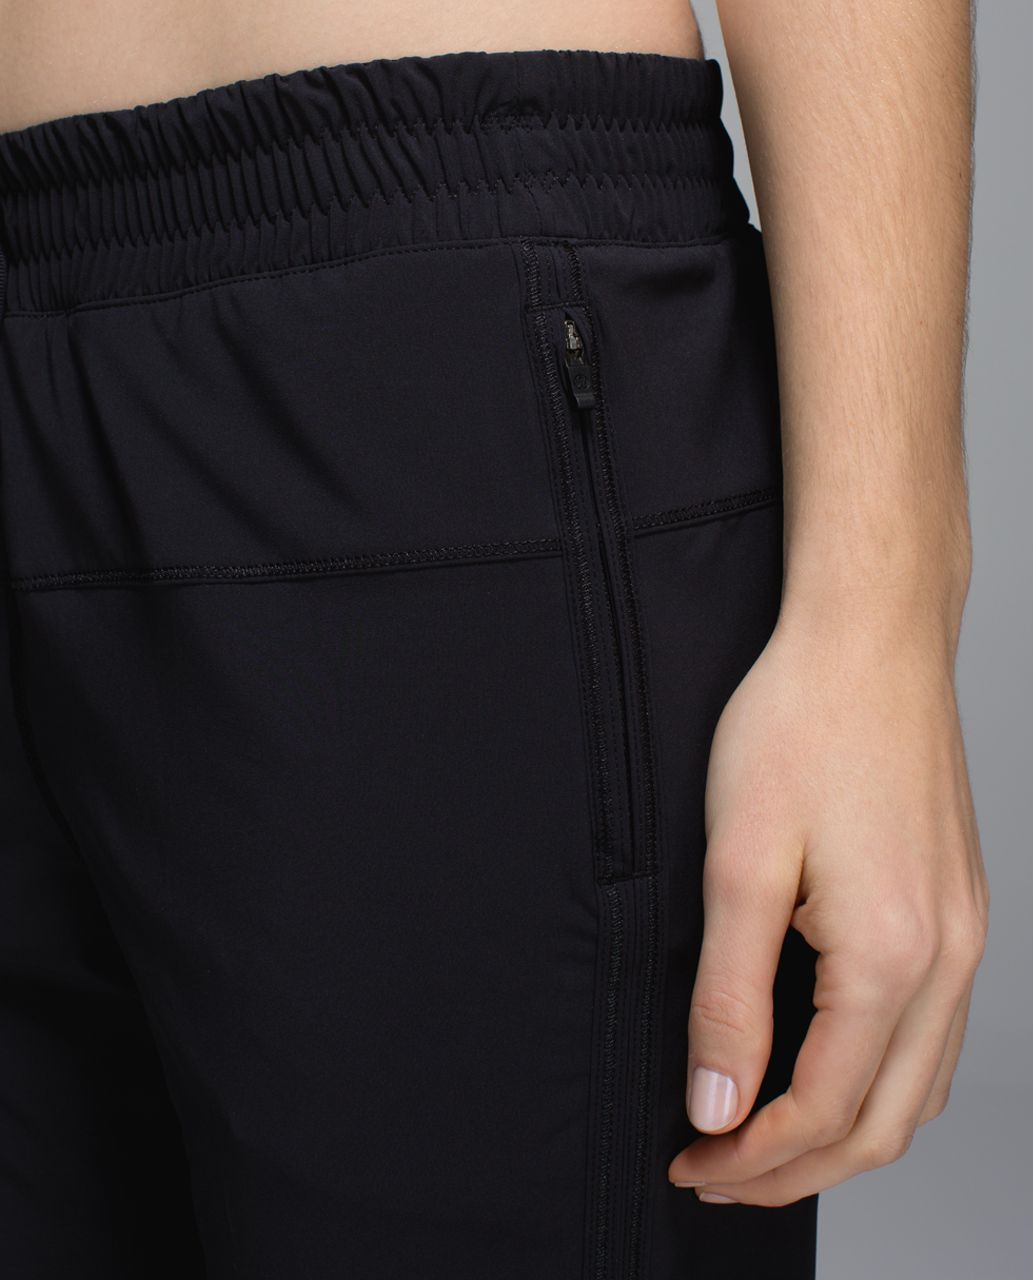 Lululemon Track To Reality Pant - Black